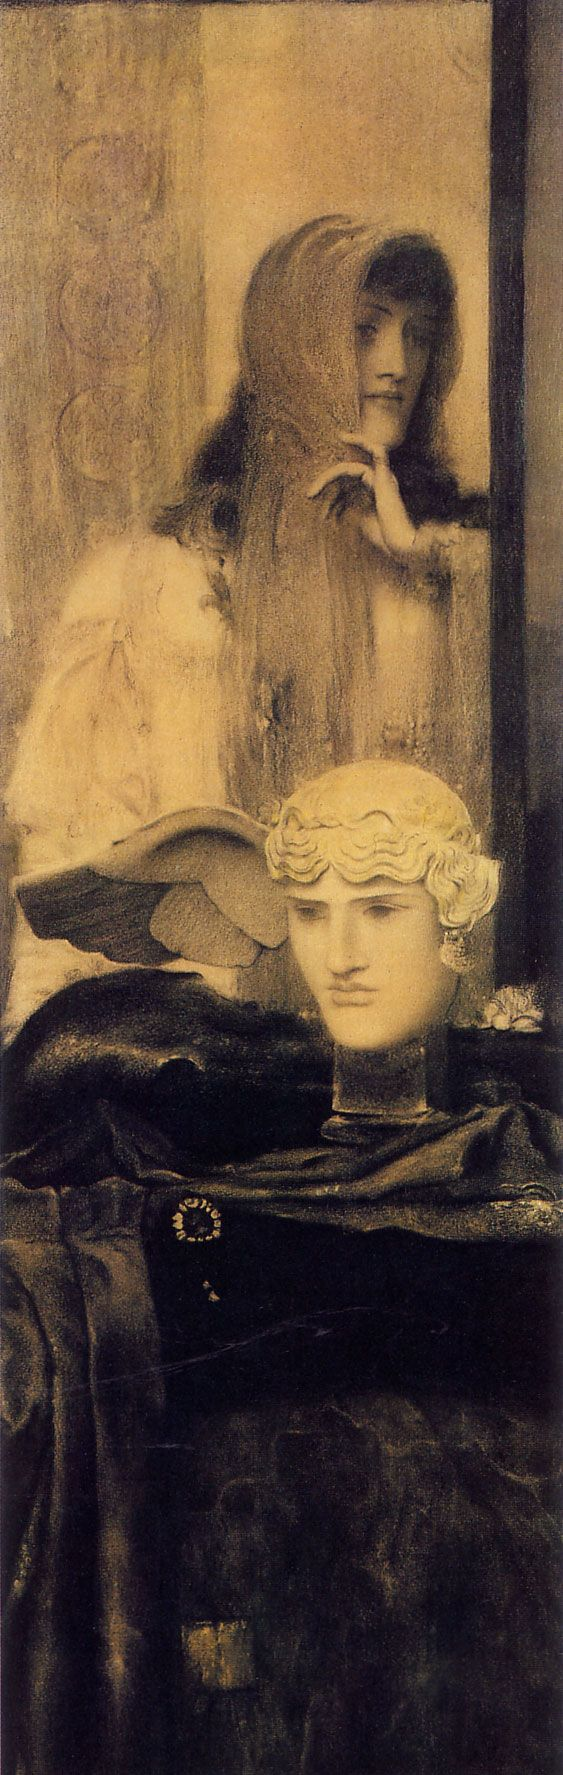 White, Black and Gold by Fernand Khnopff, Gouache + on paper 1901 Woman with a statue of Hypnos by the Belgian artist Fernand Khnopff.: